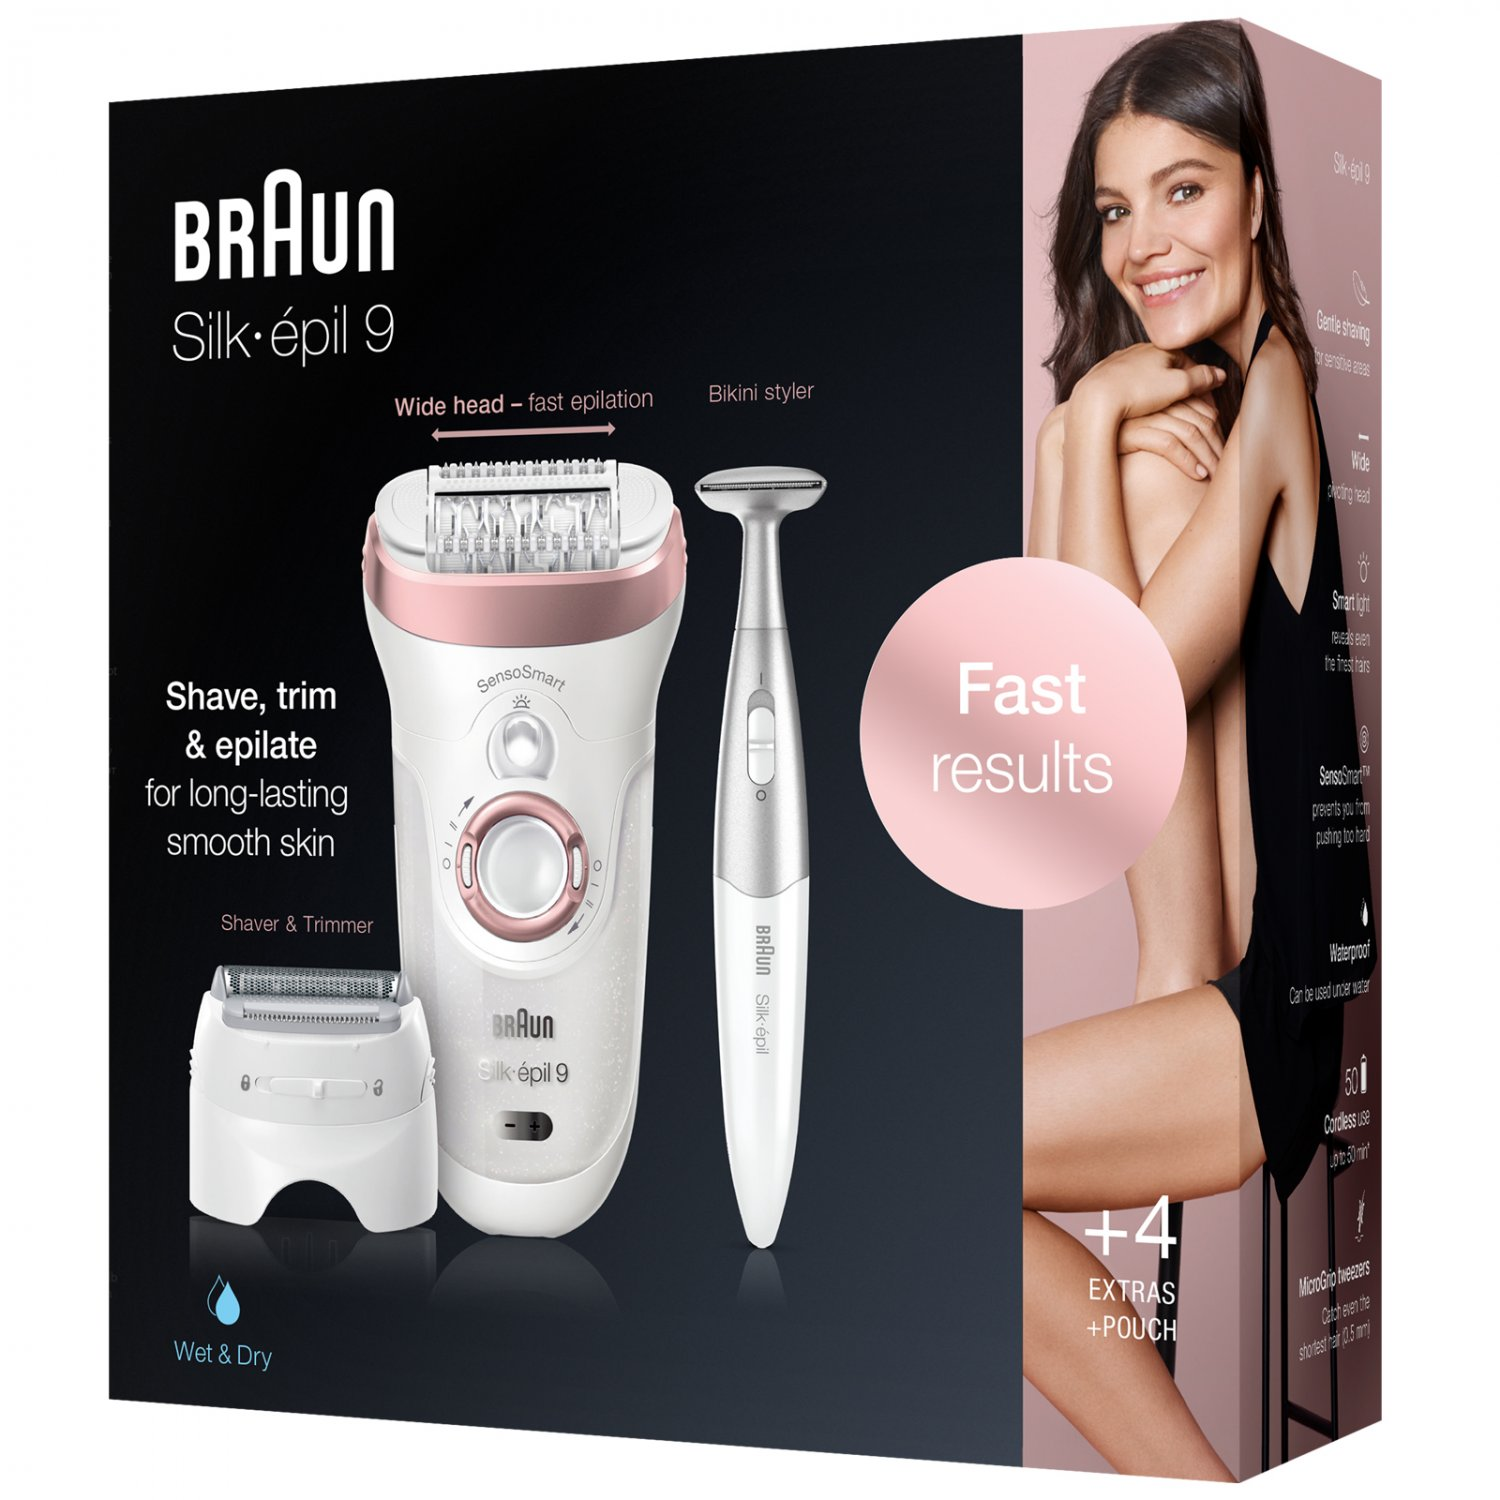 New Braun Silk-epil 9 SensoSmart 9/890 Wet & Dry Epilator with 4 Extras including 3in1 Trimmer